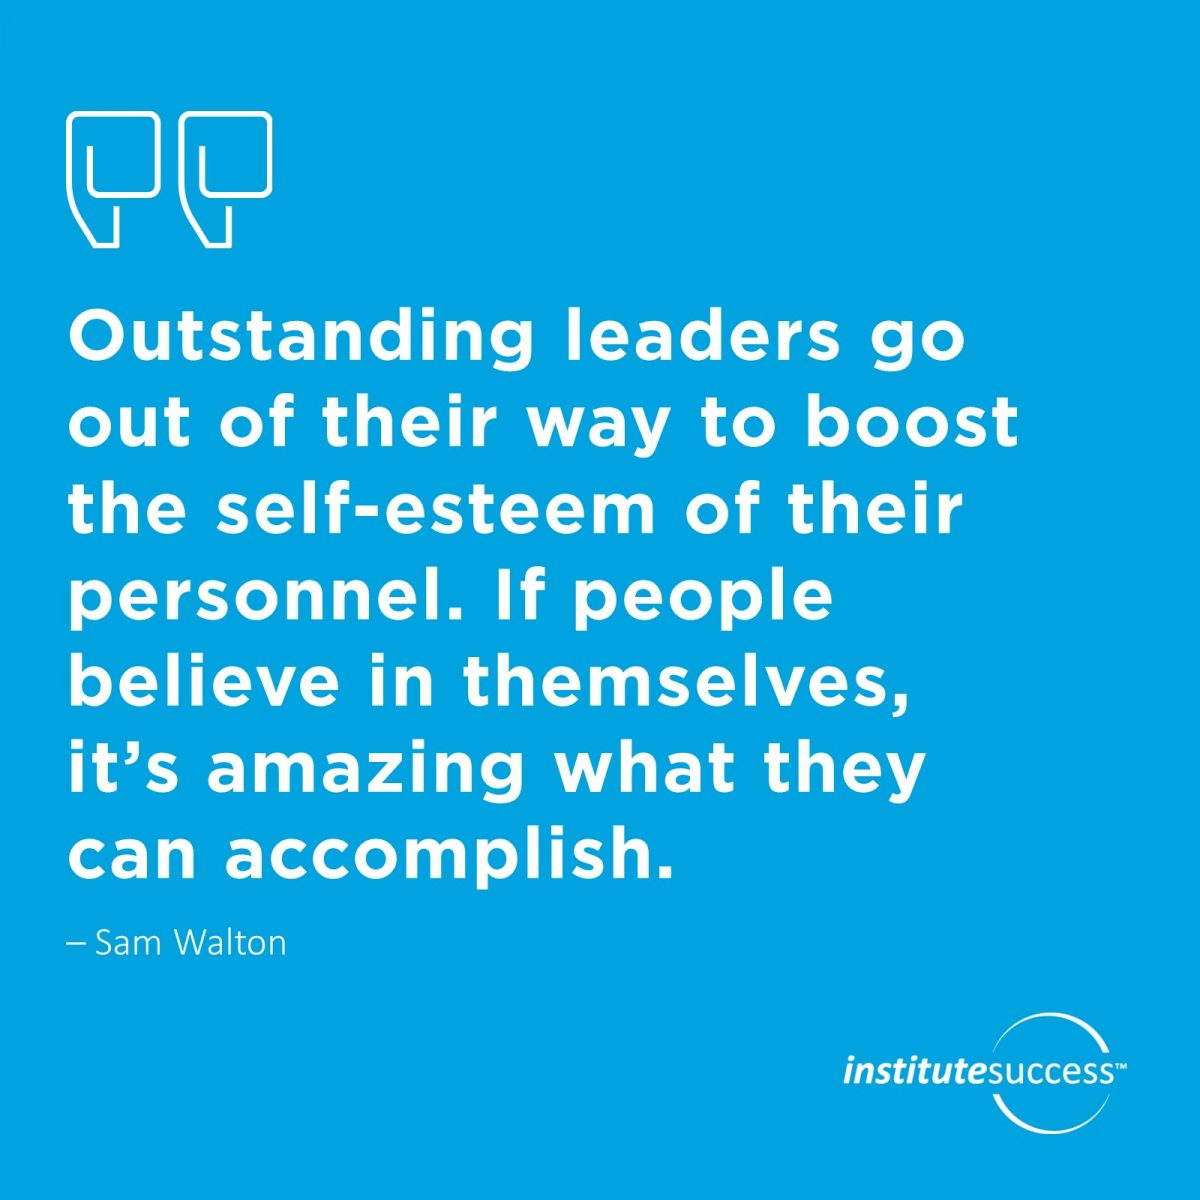 Outstanding leaders go out of their way to boost the self-esteem of their personnel. If people believe in themselves, it's amazing what they can accomplish.   Sam Walton